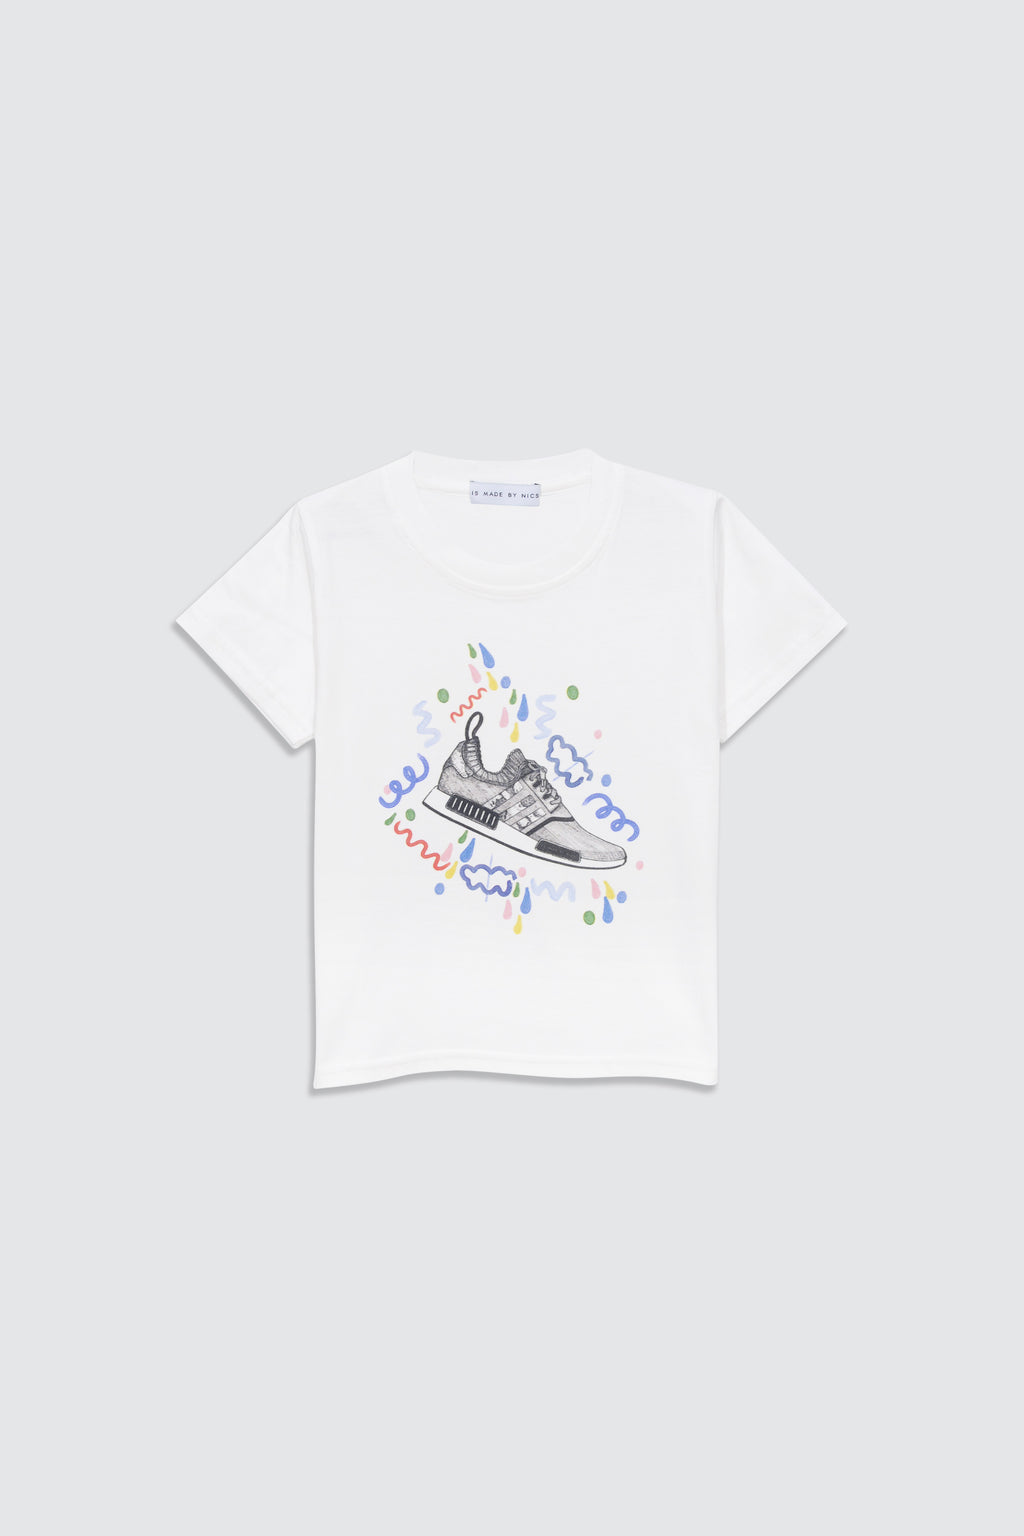 [Made By Nics] MBN-Supreme T-Shirt [9M-9Y]